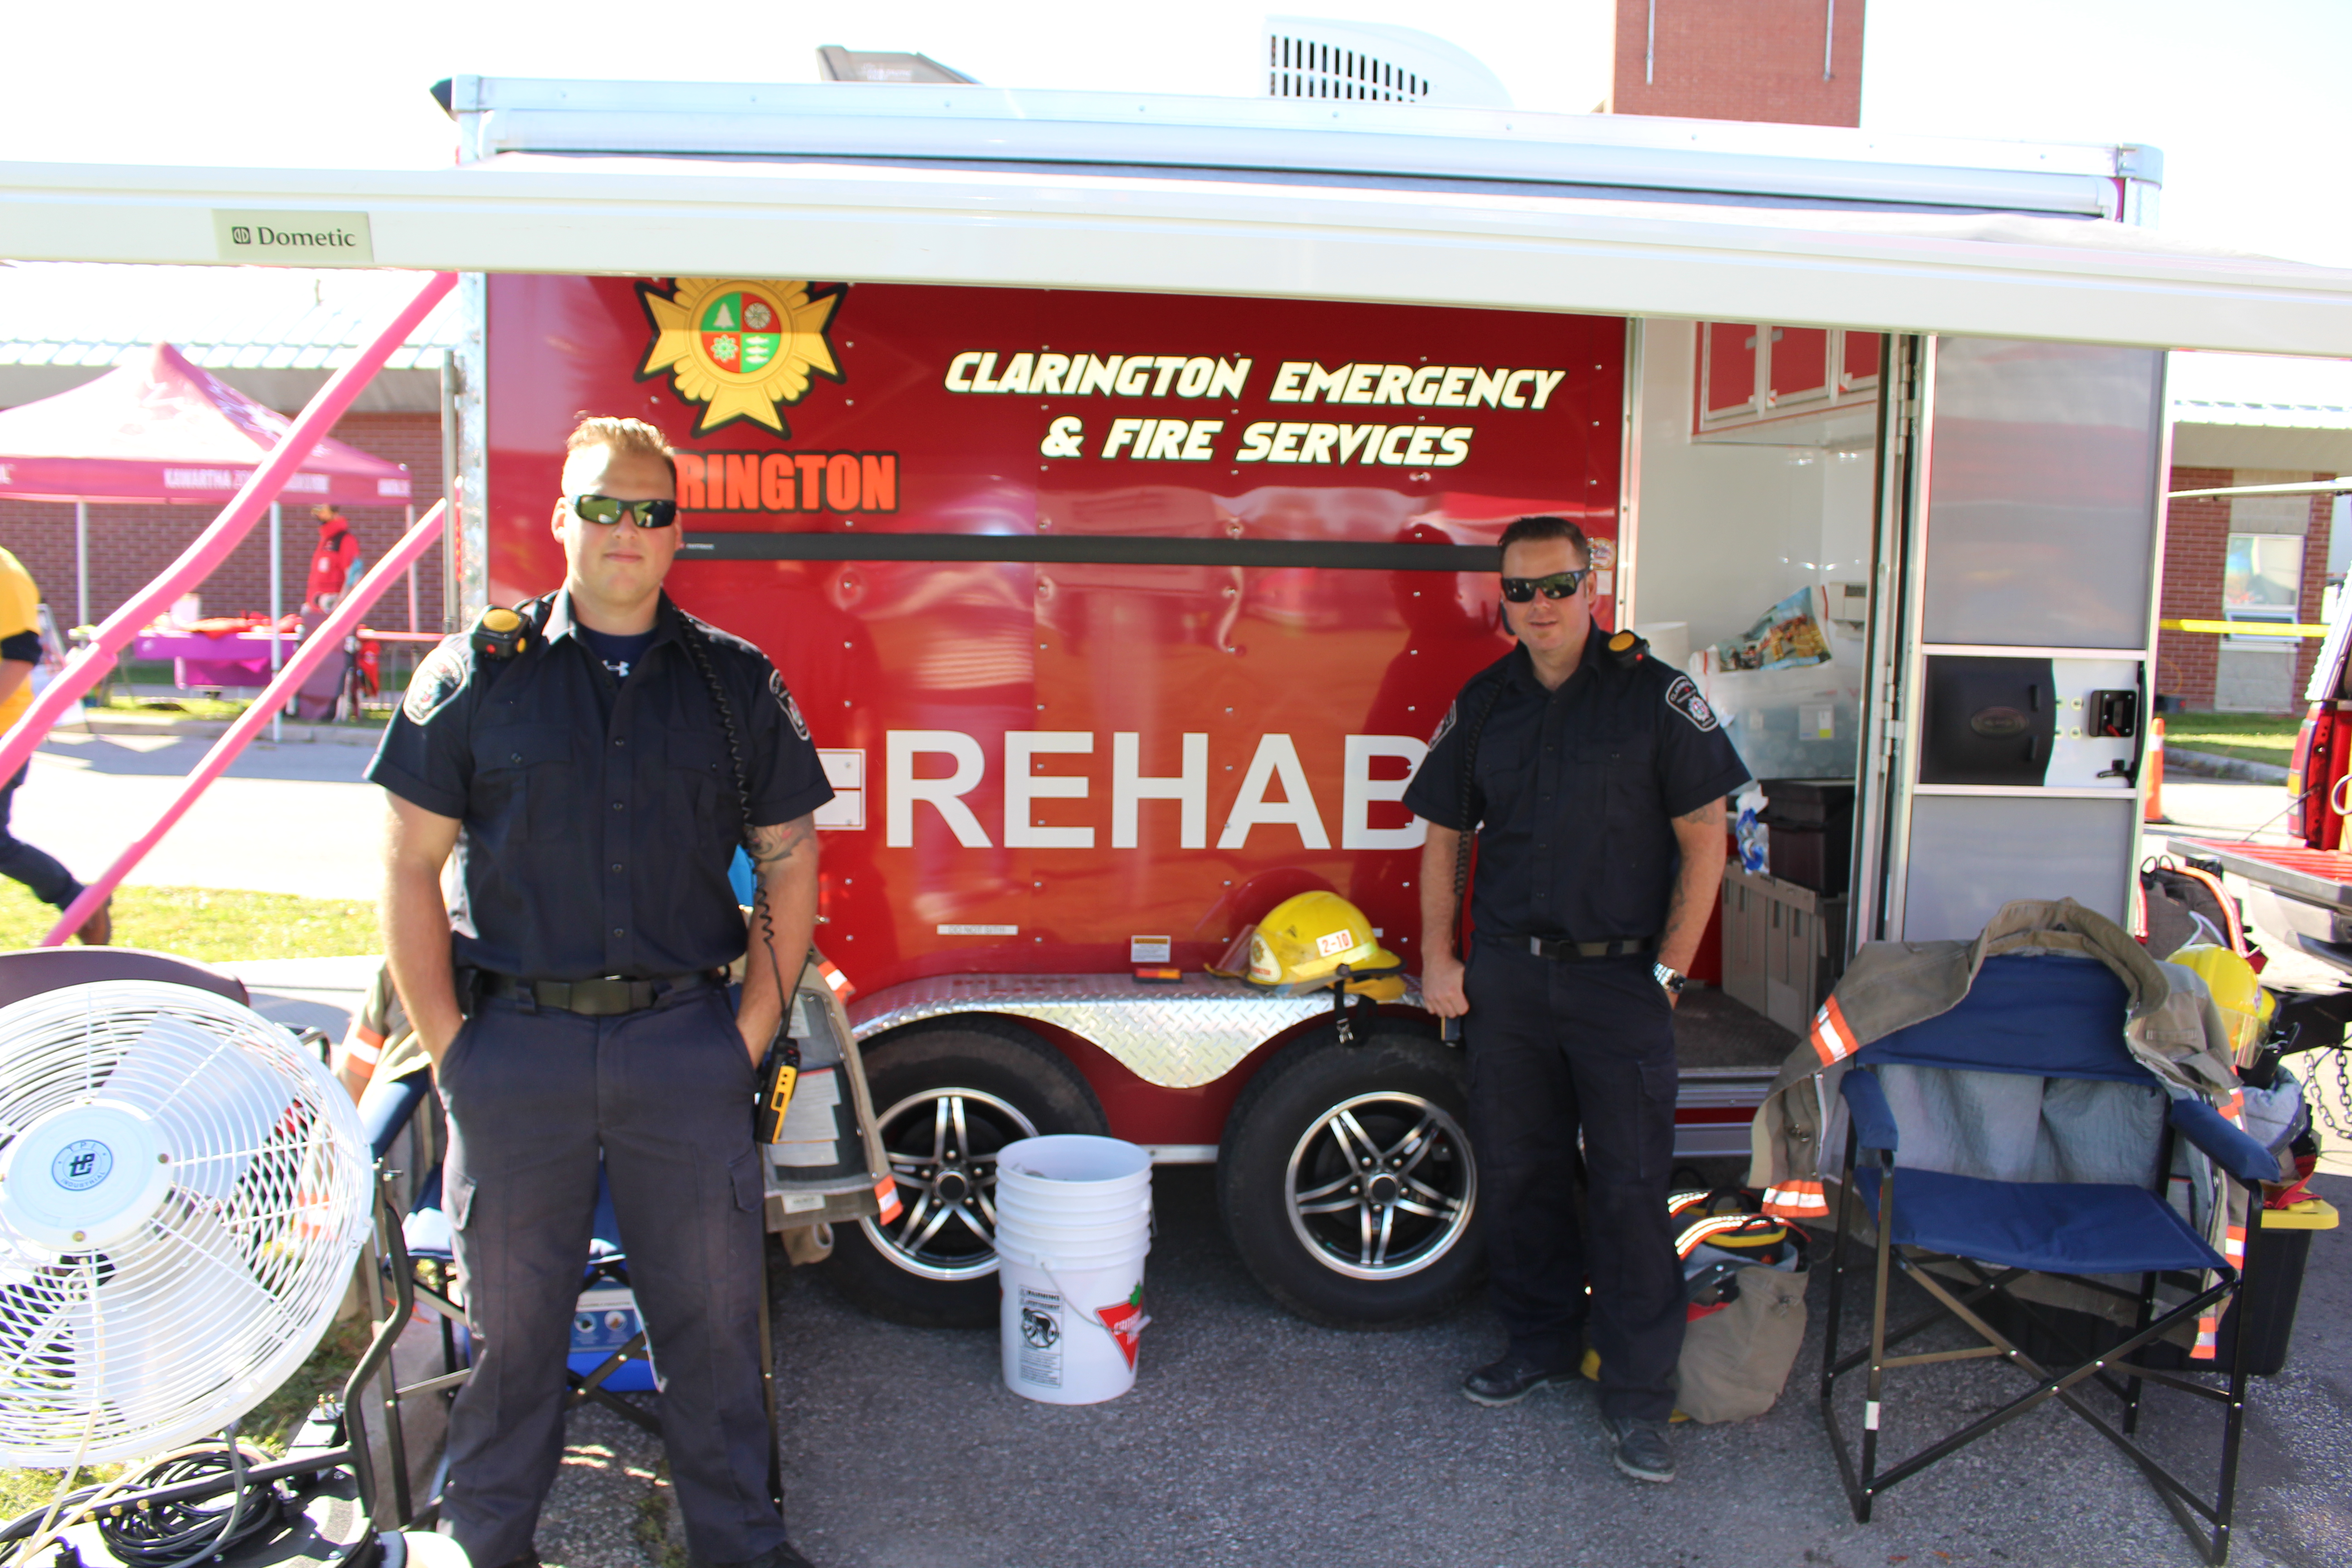 Clarington Emergency and Fire Services' Mobile Cooling Centre